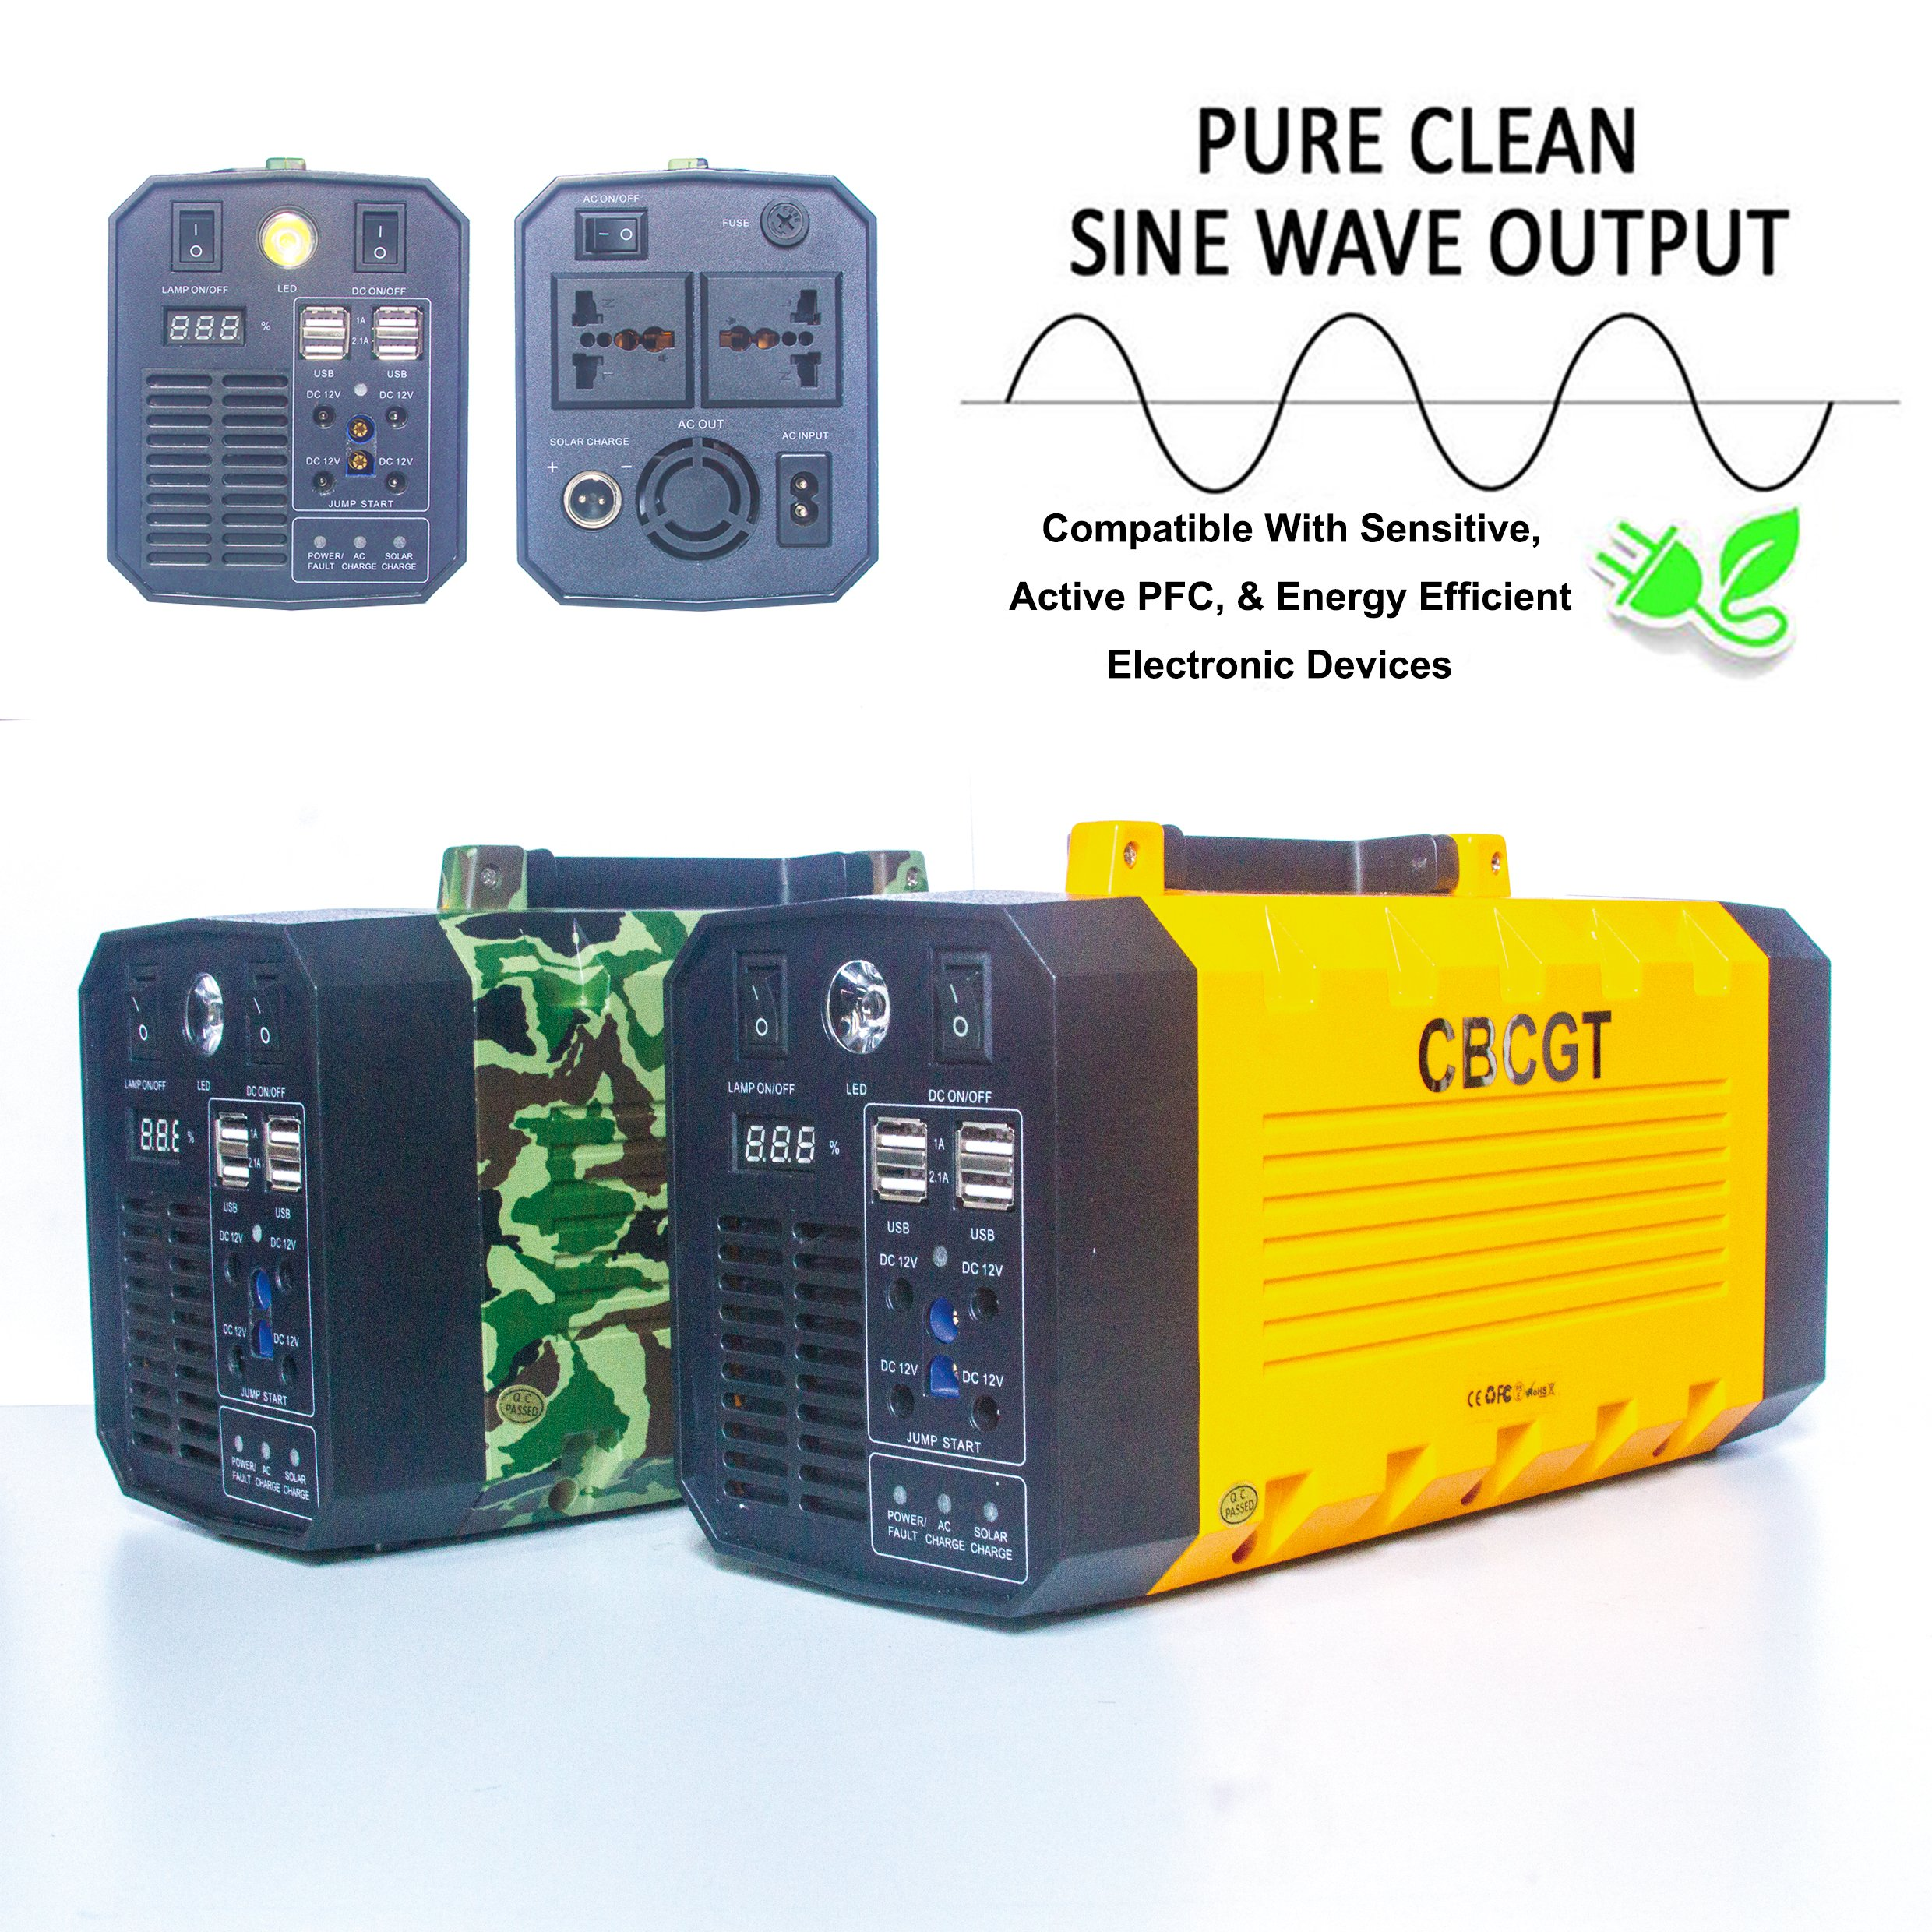 CBCGT Pure Sine Wave Portable Uninterruptible Power Supply 500W (Peak 1000W) UPS Power Backup with Built-in 26AH Lithium Battery Solar generatorar with Car Jump Starter USB DC AC Device